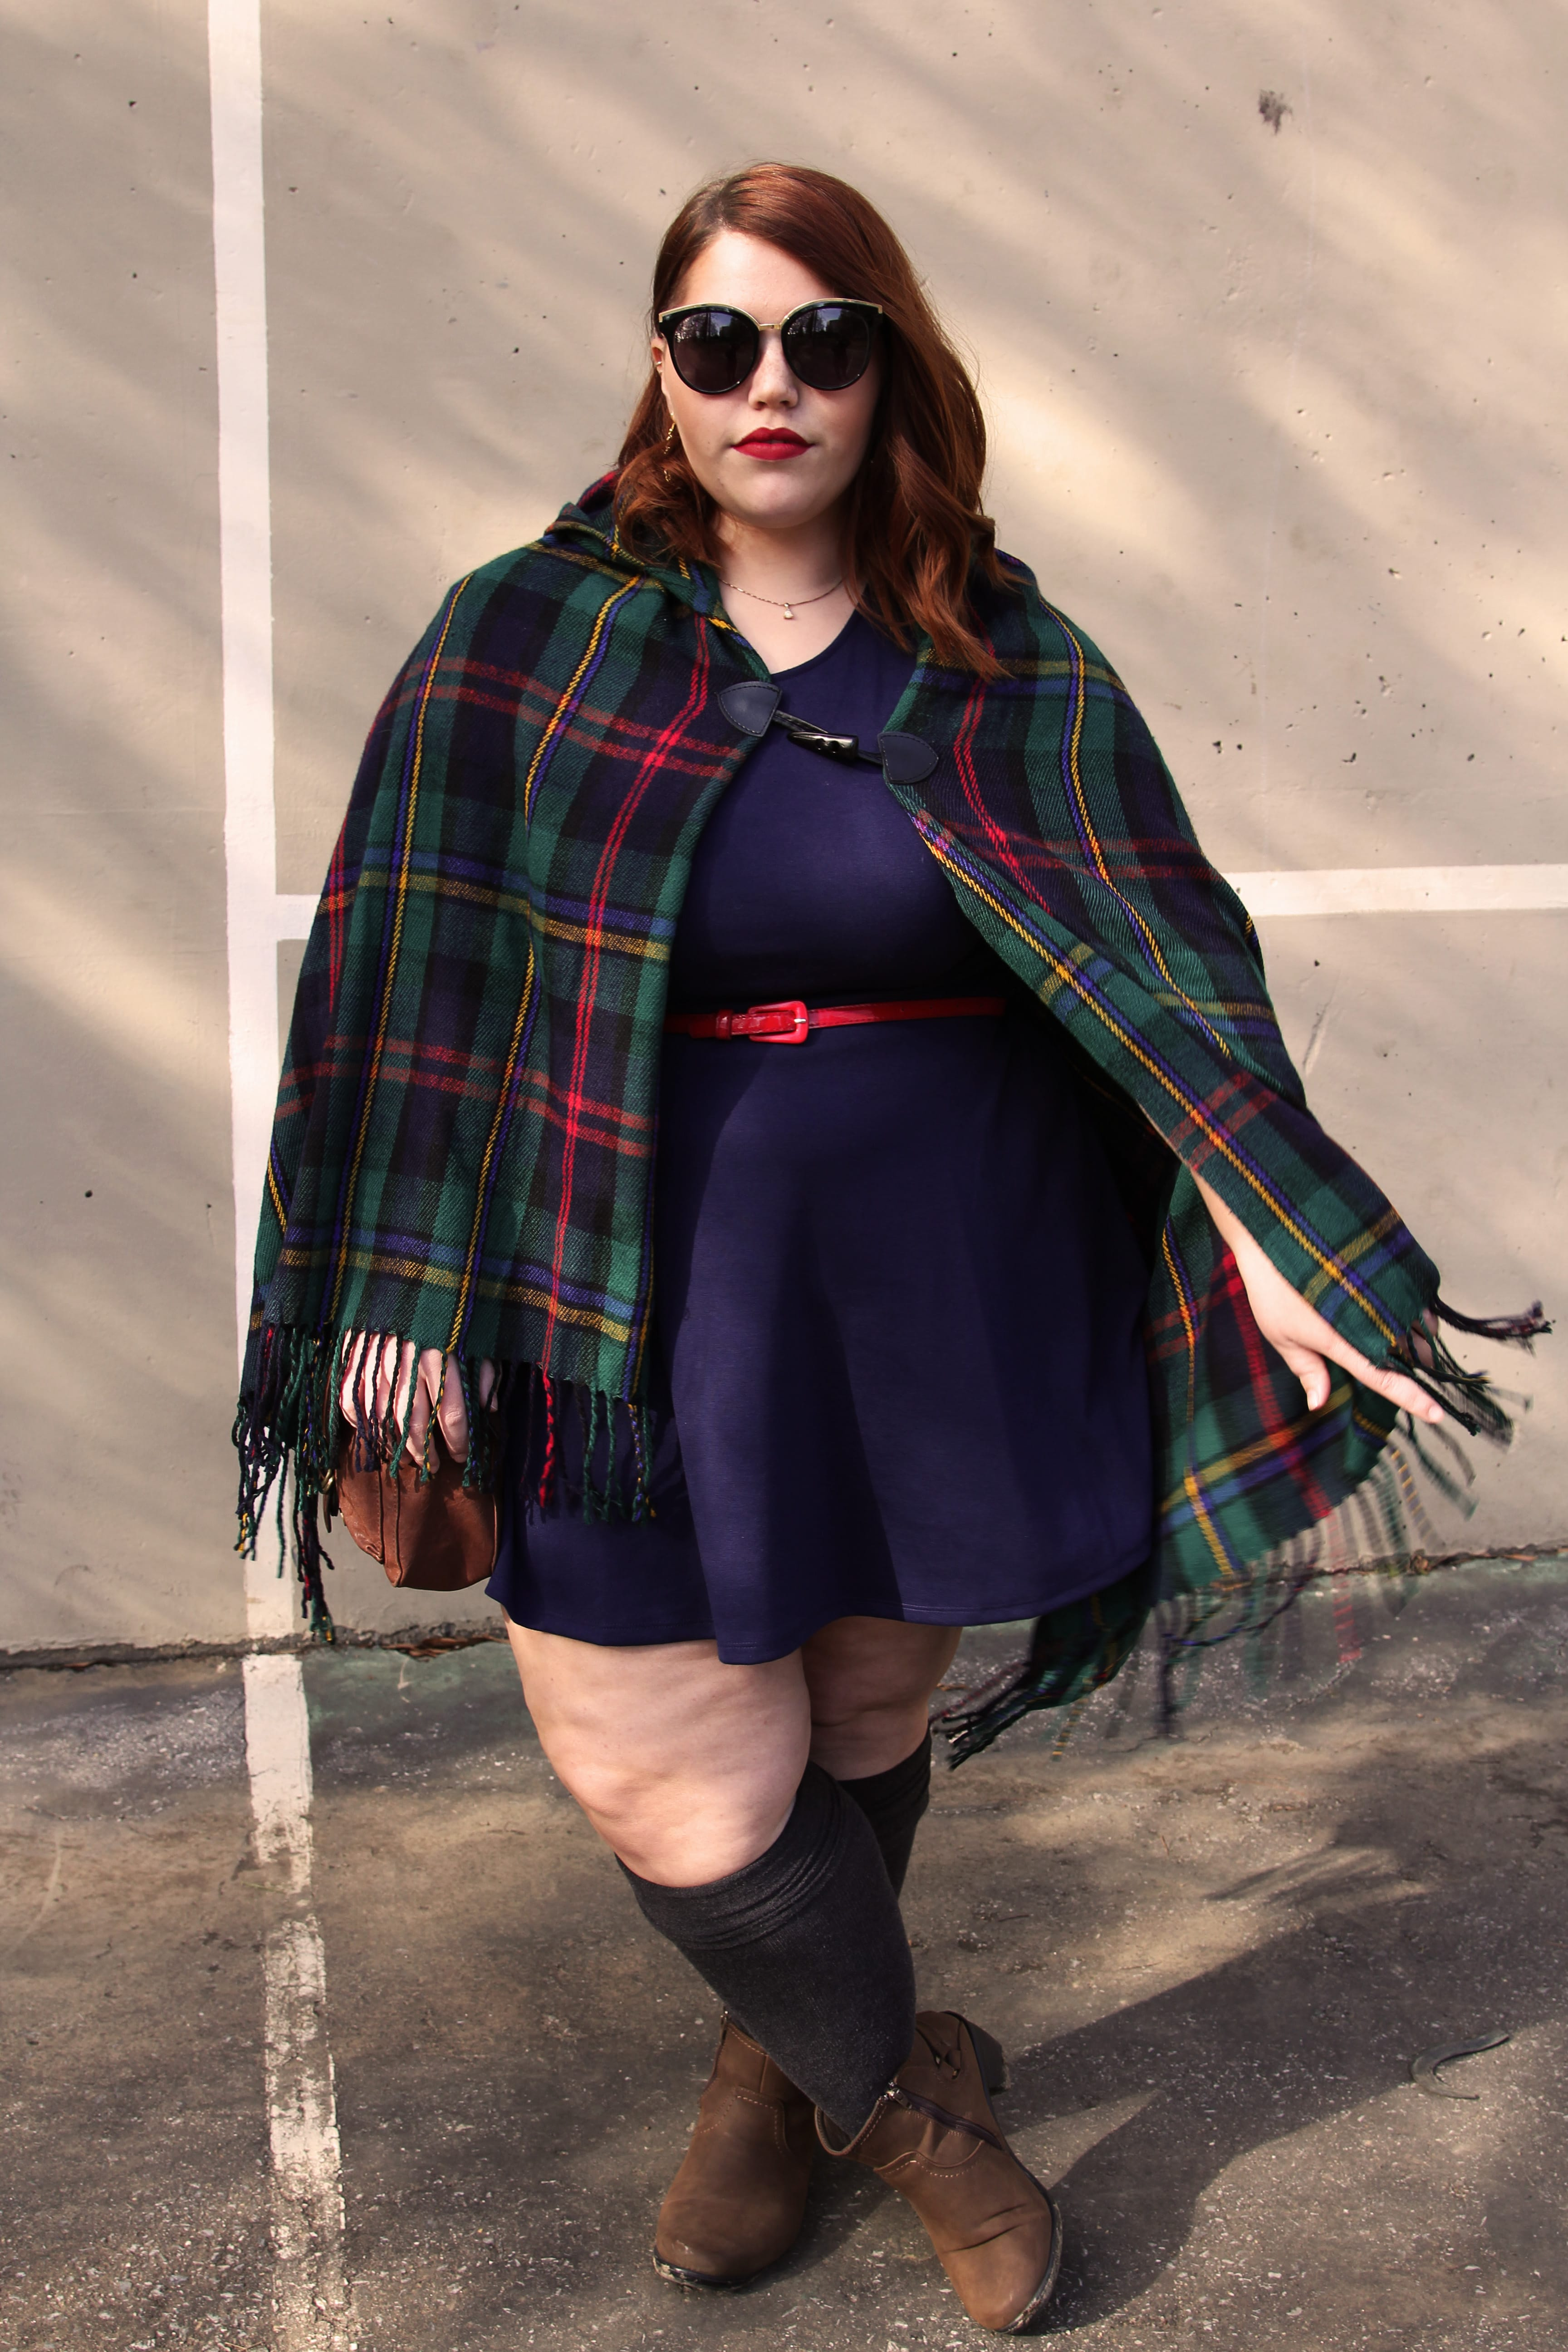 Plus size femme-presenting woman wearing a short blue dress with a thin red belt. She's also wearing a plaid cape with green, red, yellow, and blue colors. She's wearing red lipstick, big sunglasses, gray knee socks, and her hair is red and in loose curls.